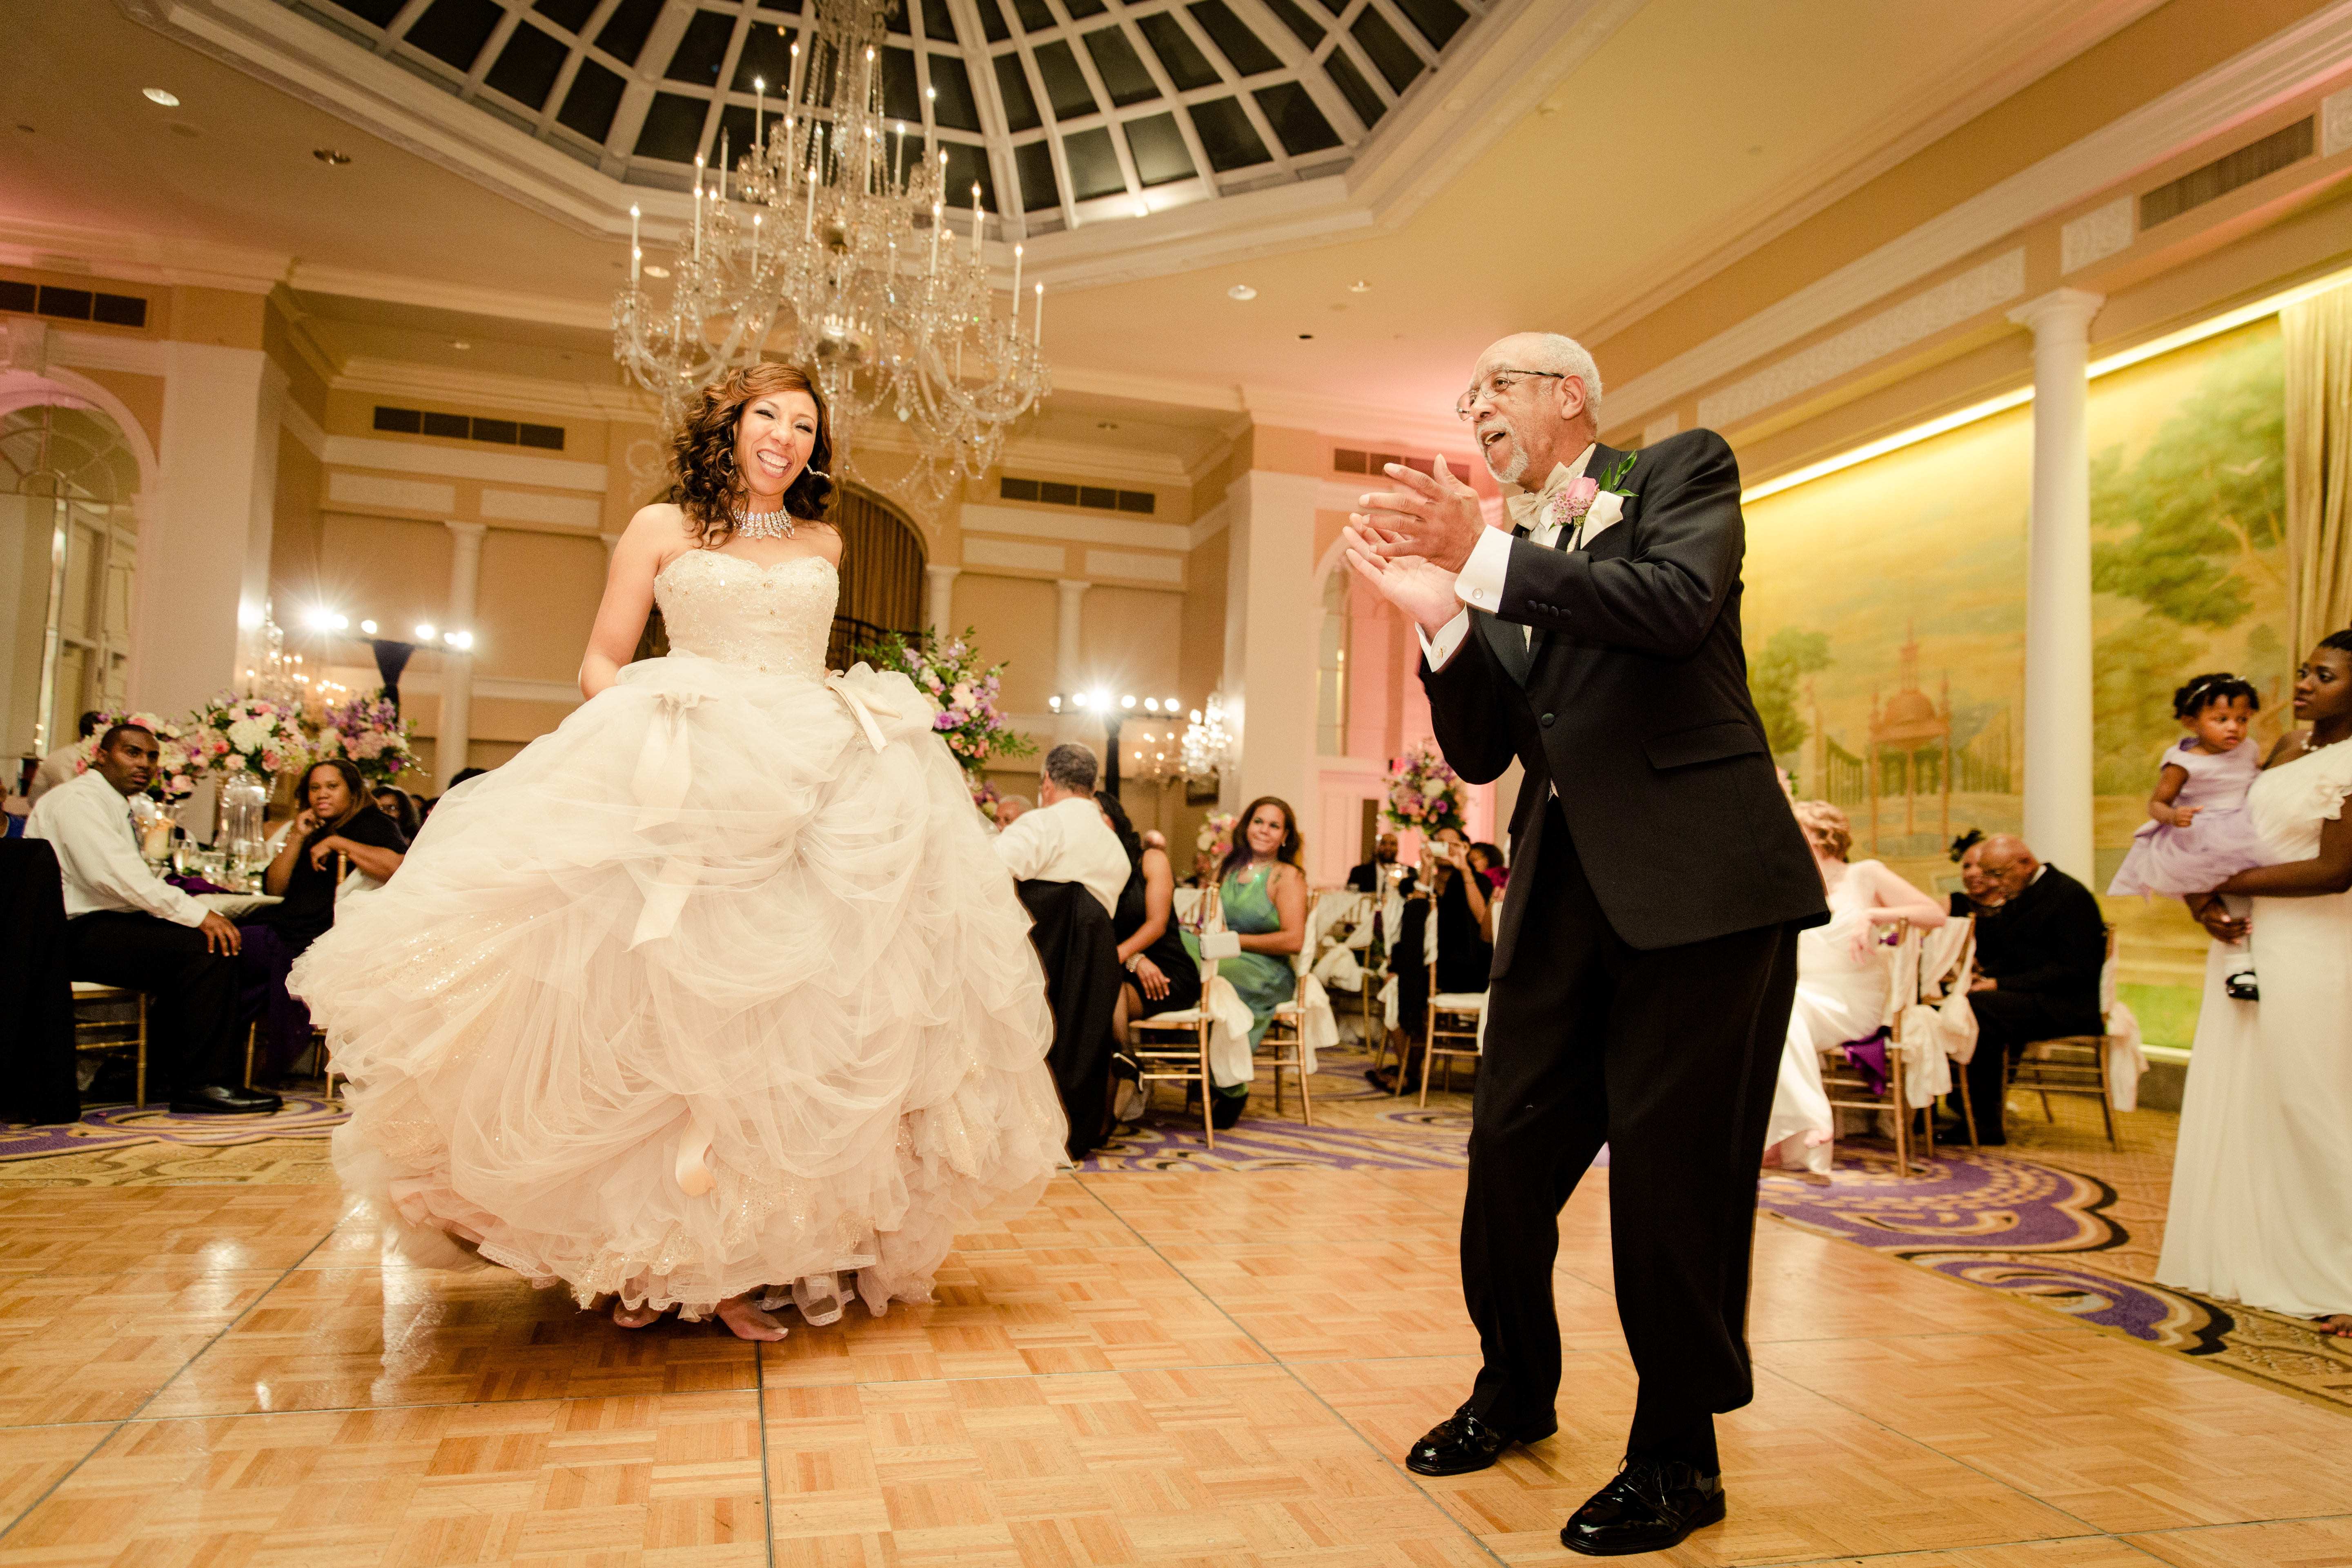 Ceremony And Reception Music: Ceremony, Reception, And Specialty Song Checklists And